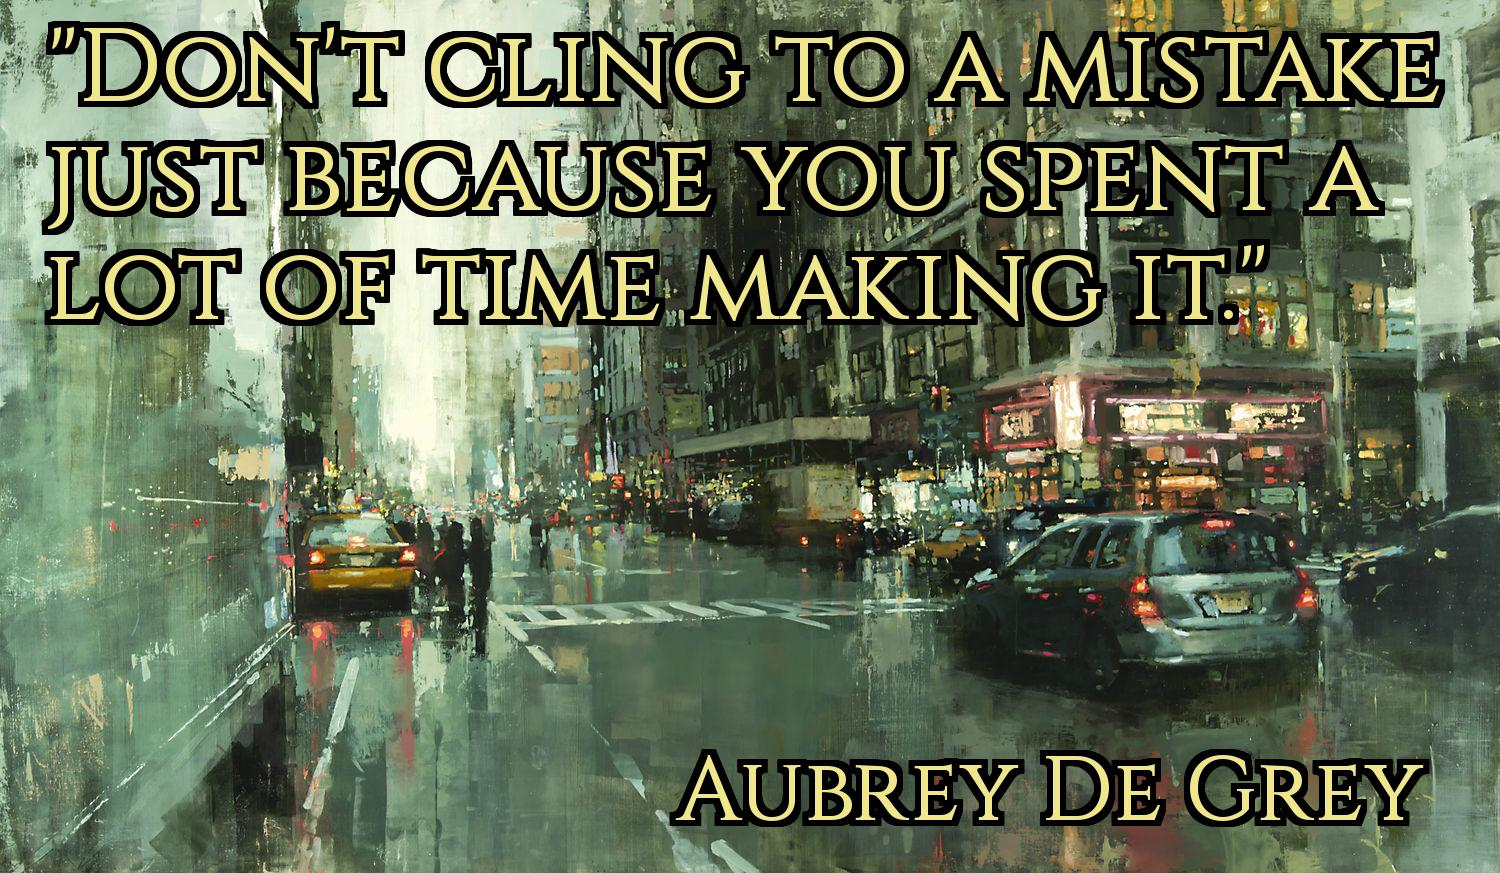 "[Image] ""Don't cling to a mistake just because you spent a lot of time making it."""